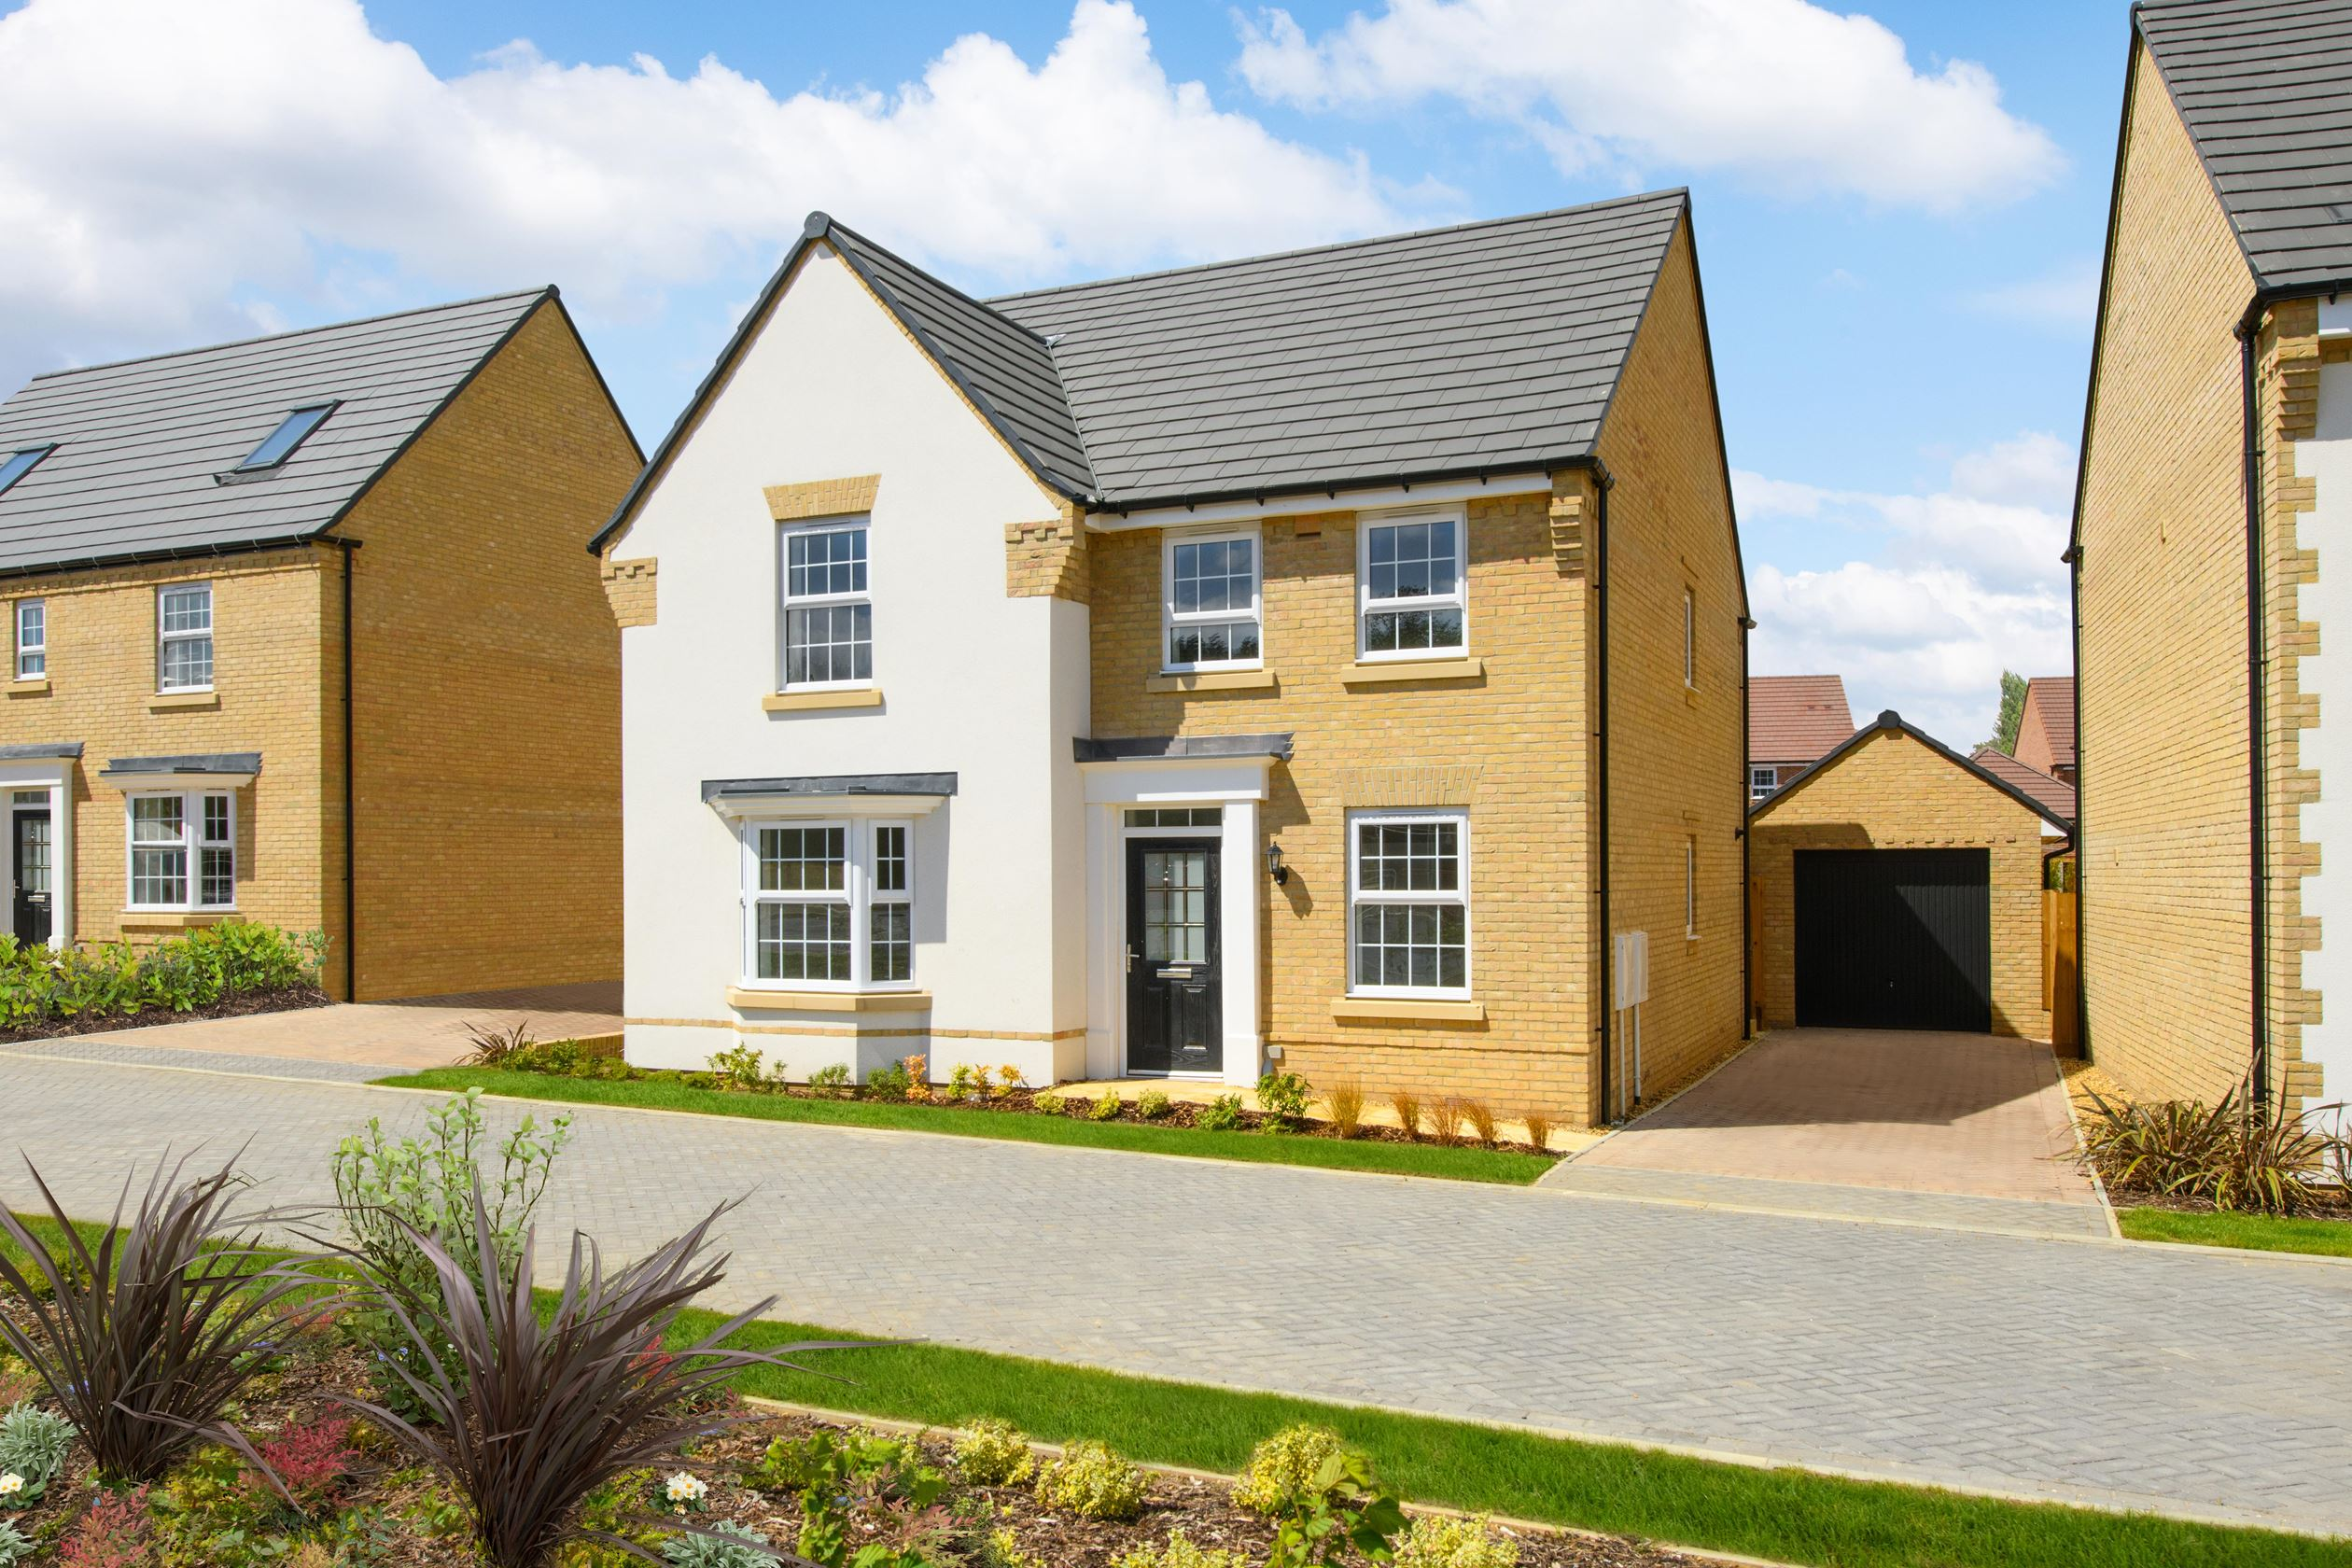 Masrham Park Bury St Edmunds Holden 4 bedroom detached